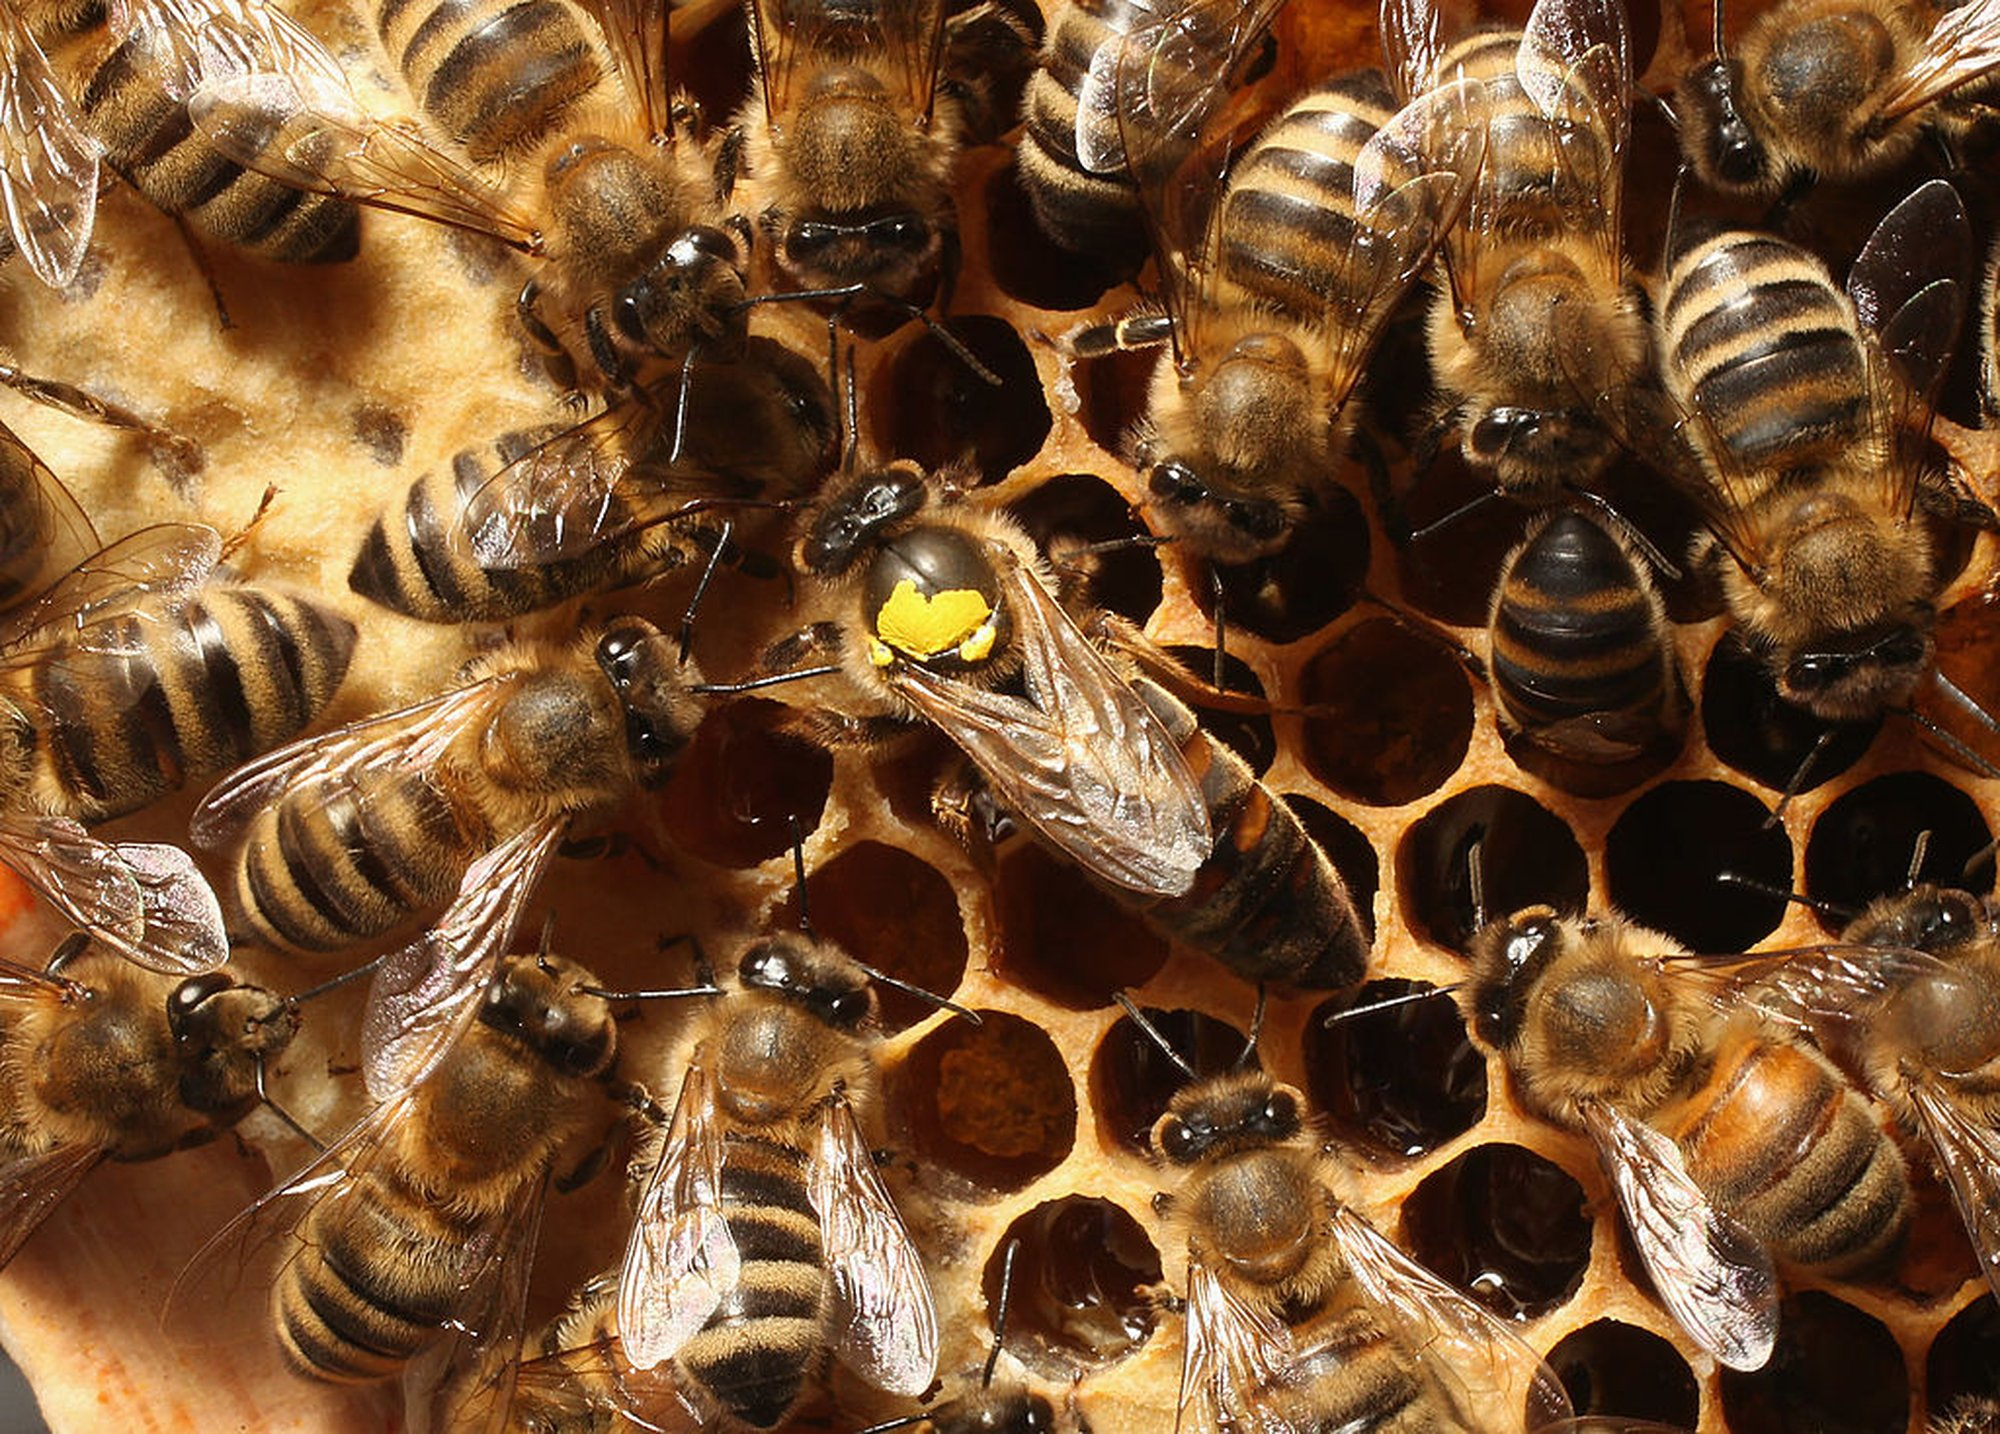 Invasion of the 'Frankenbees': The Danger of Building a Better Bee - The Guardian - Pocket